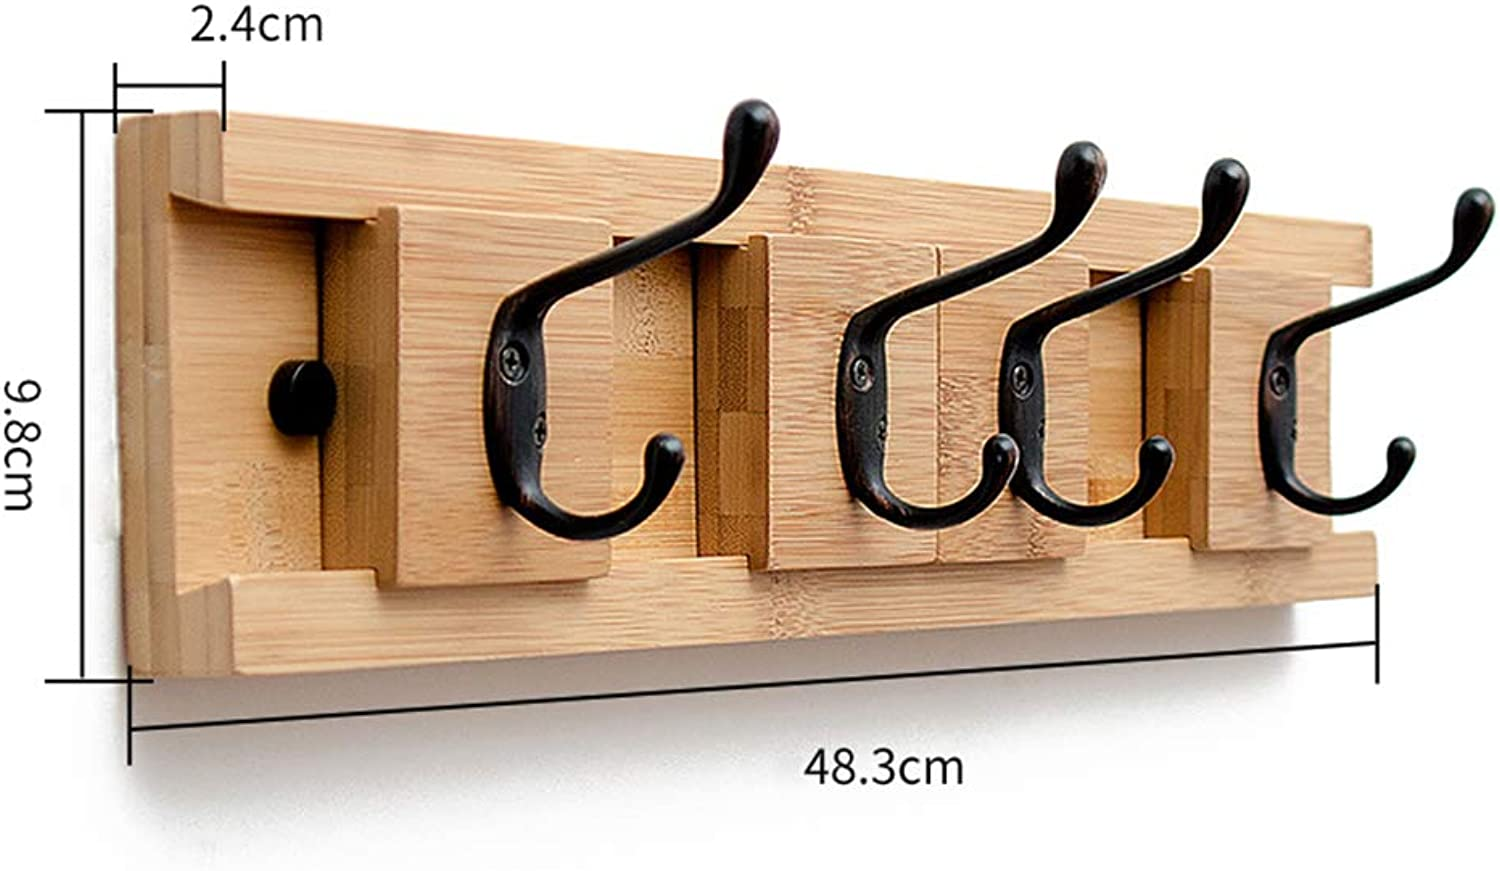 HHXD Household Wall Mounted Bamboo Coat Hook Coat rack Bedroom It Can Move Green Environmental Predection Hooks Strong Durable Moisture Proof A   48.3  9.8  2.4 cm